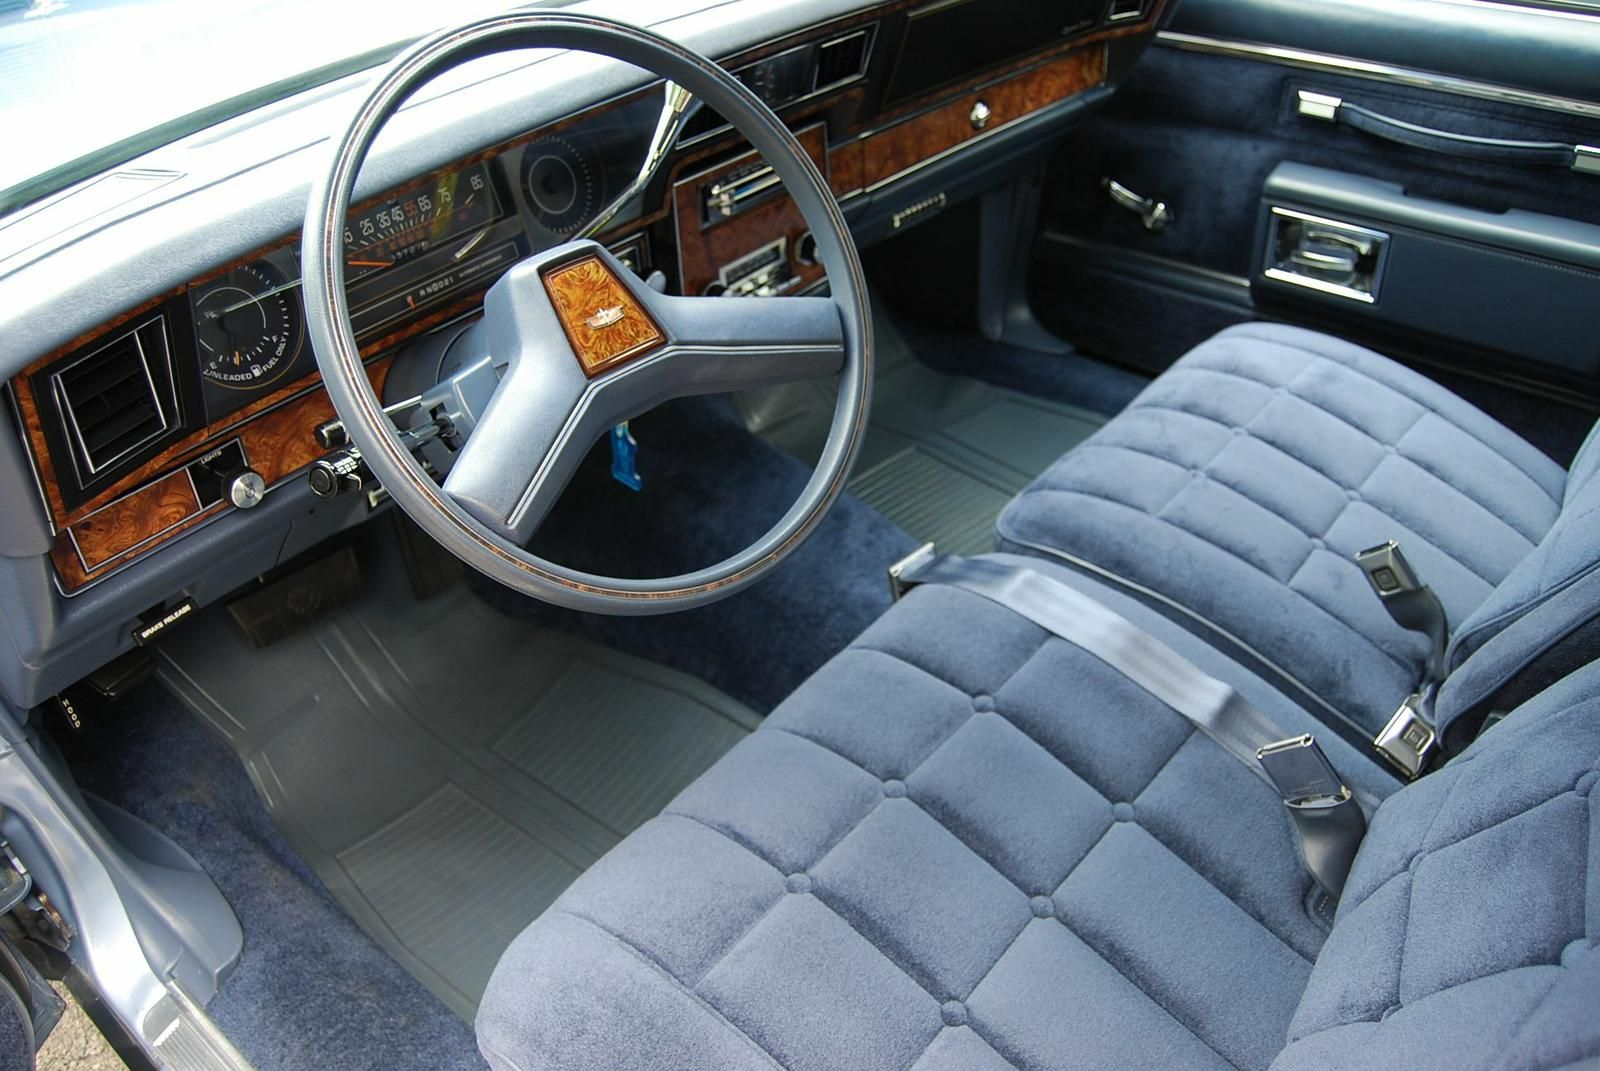 All Chevy chevy caprice 1985 : 1984 Chevrolet Caprice Classic in Light Royal Blue Poly with ...